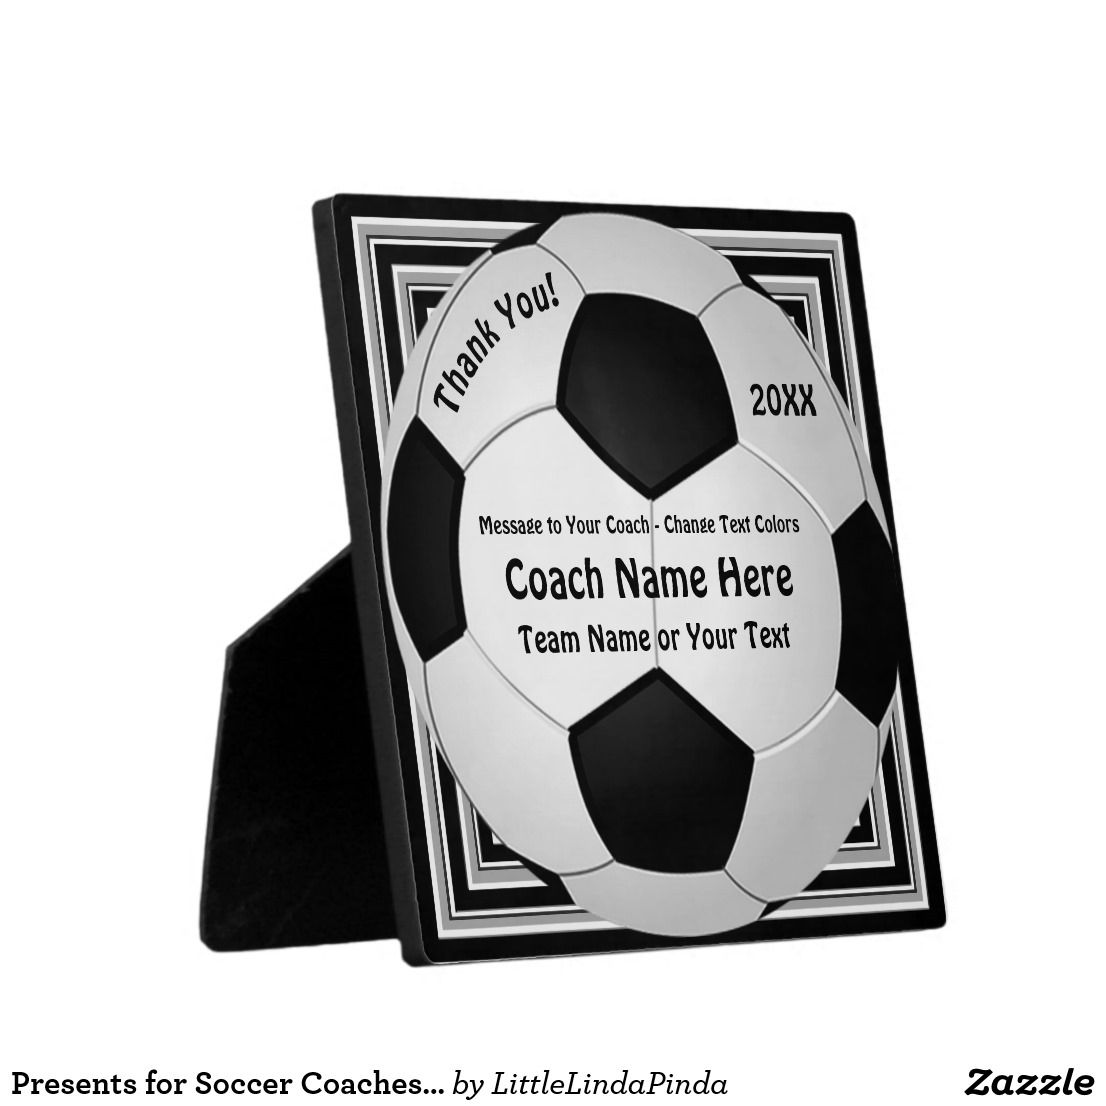 8726cf779 Thank You Presents for Soccer Coaches. CLICK Cool Personalized Soccer  Plaques Image with 4 Text